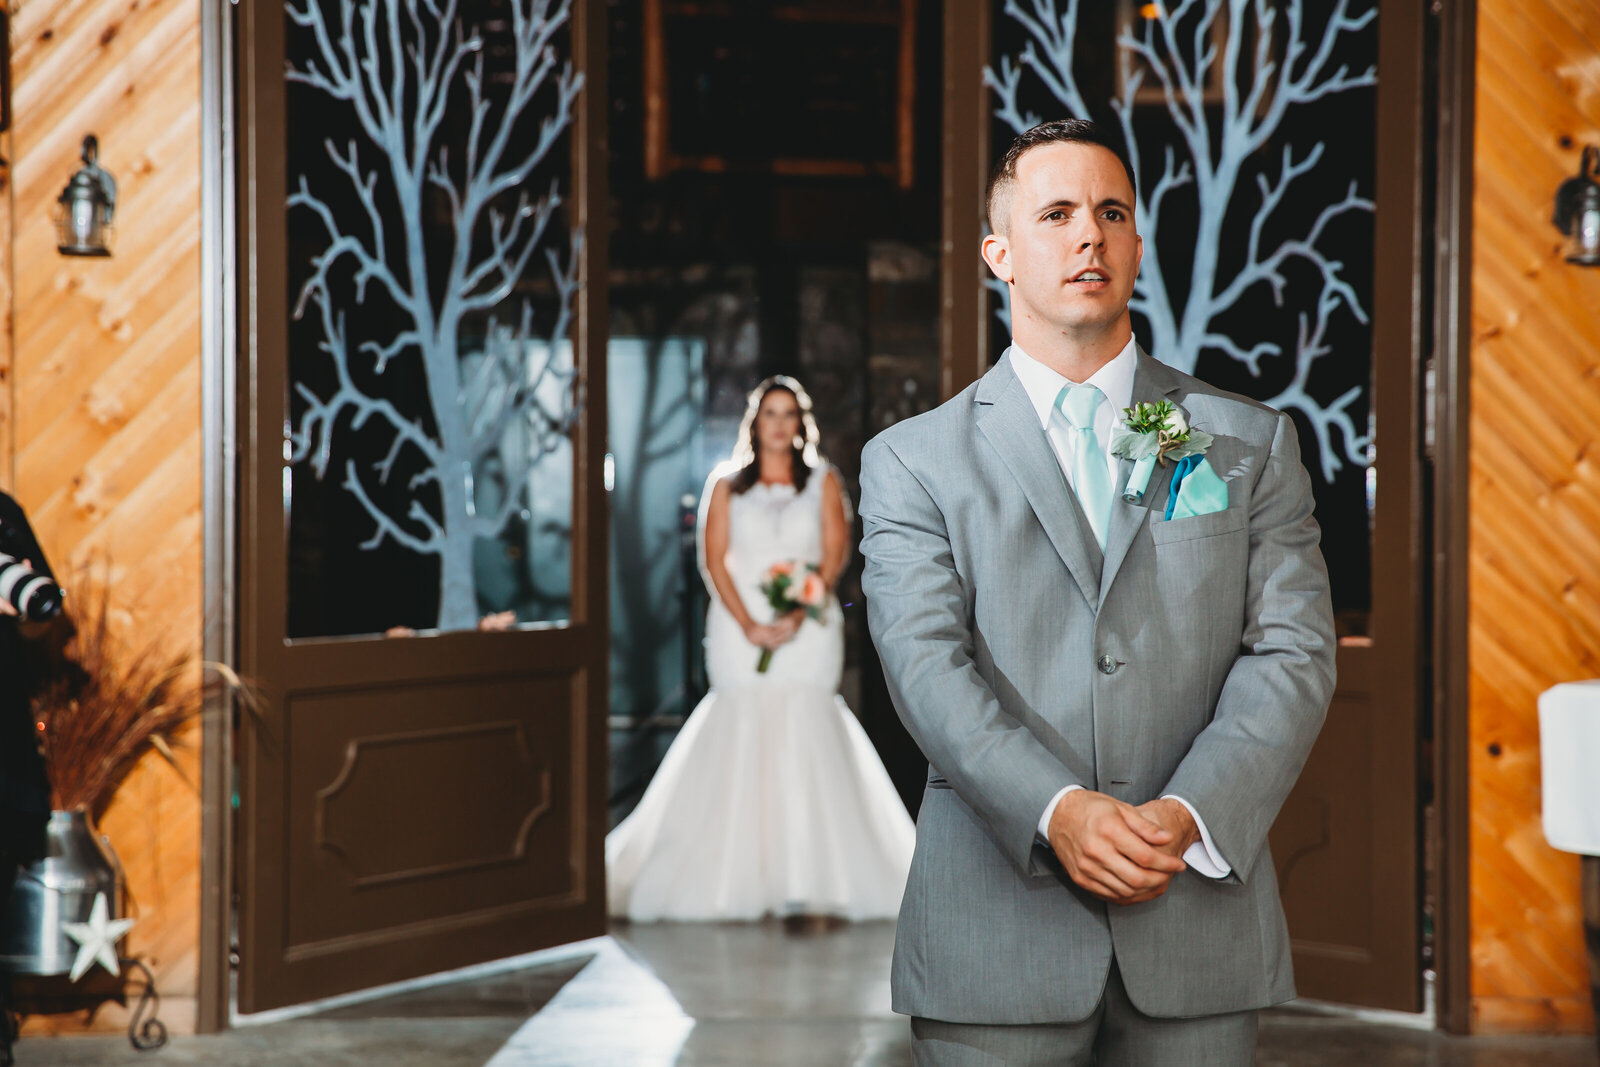 LouieLaurenCurtisWedding10-19-19-266